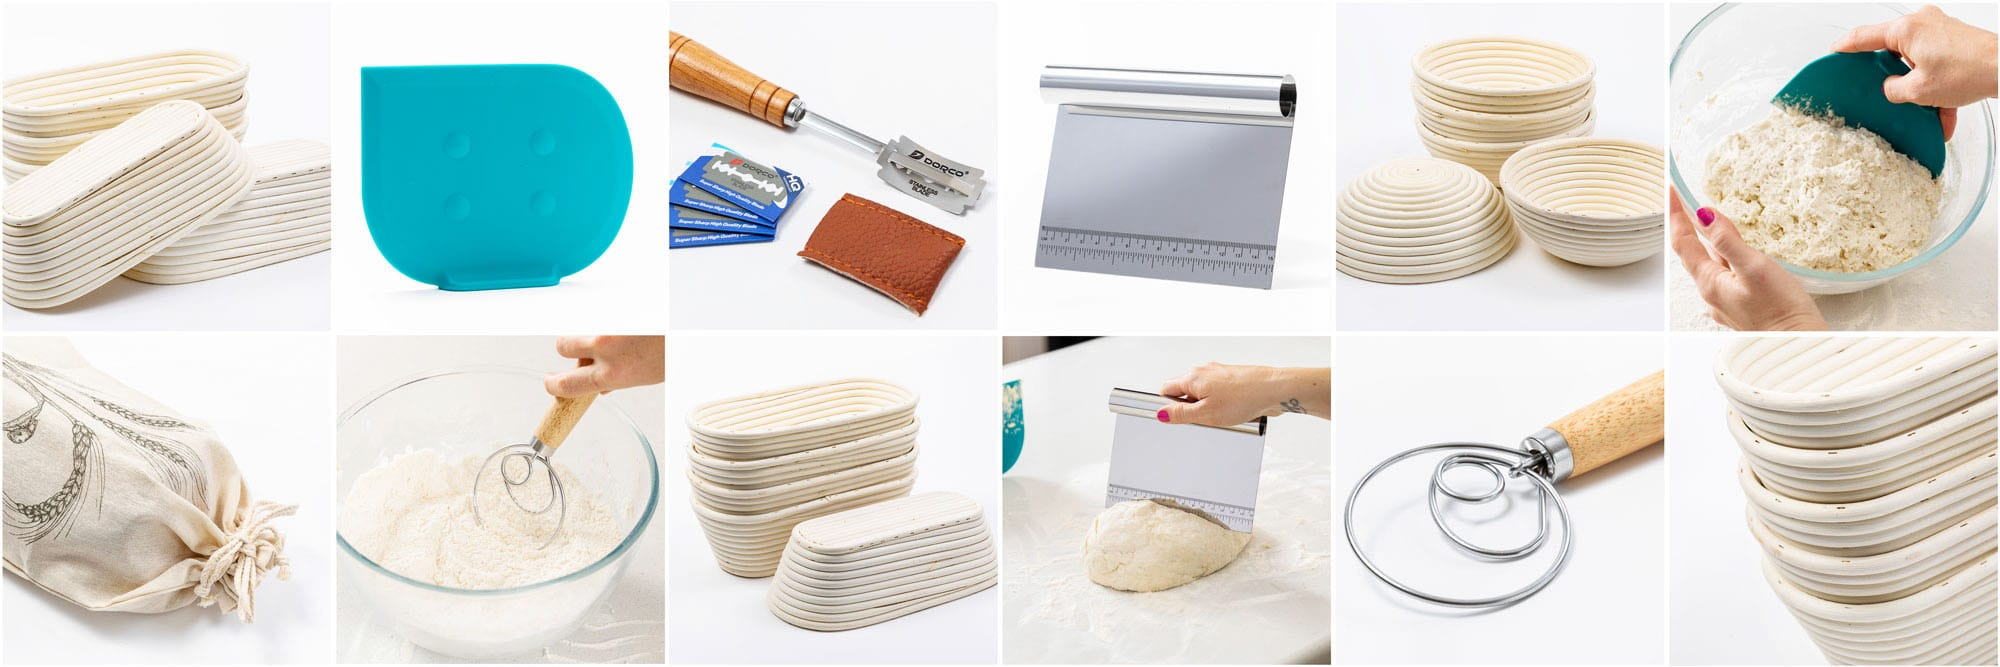 Proofing basket and other baking tools